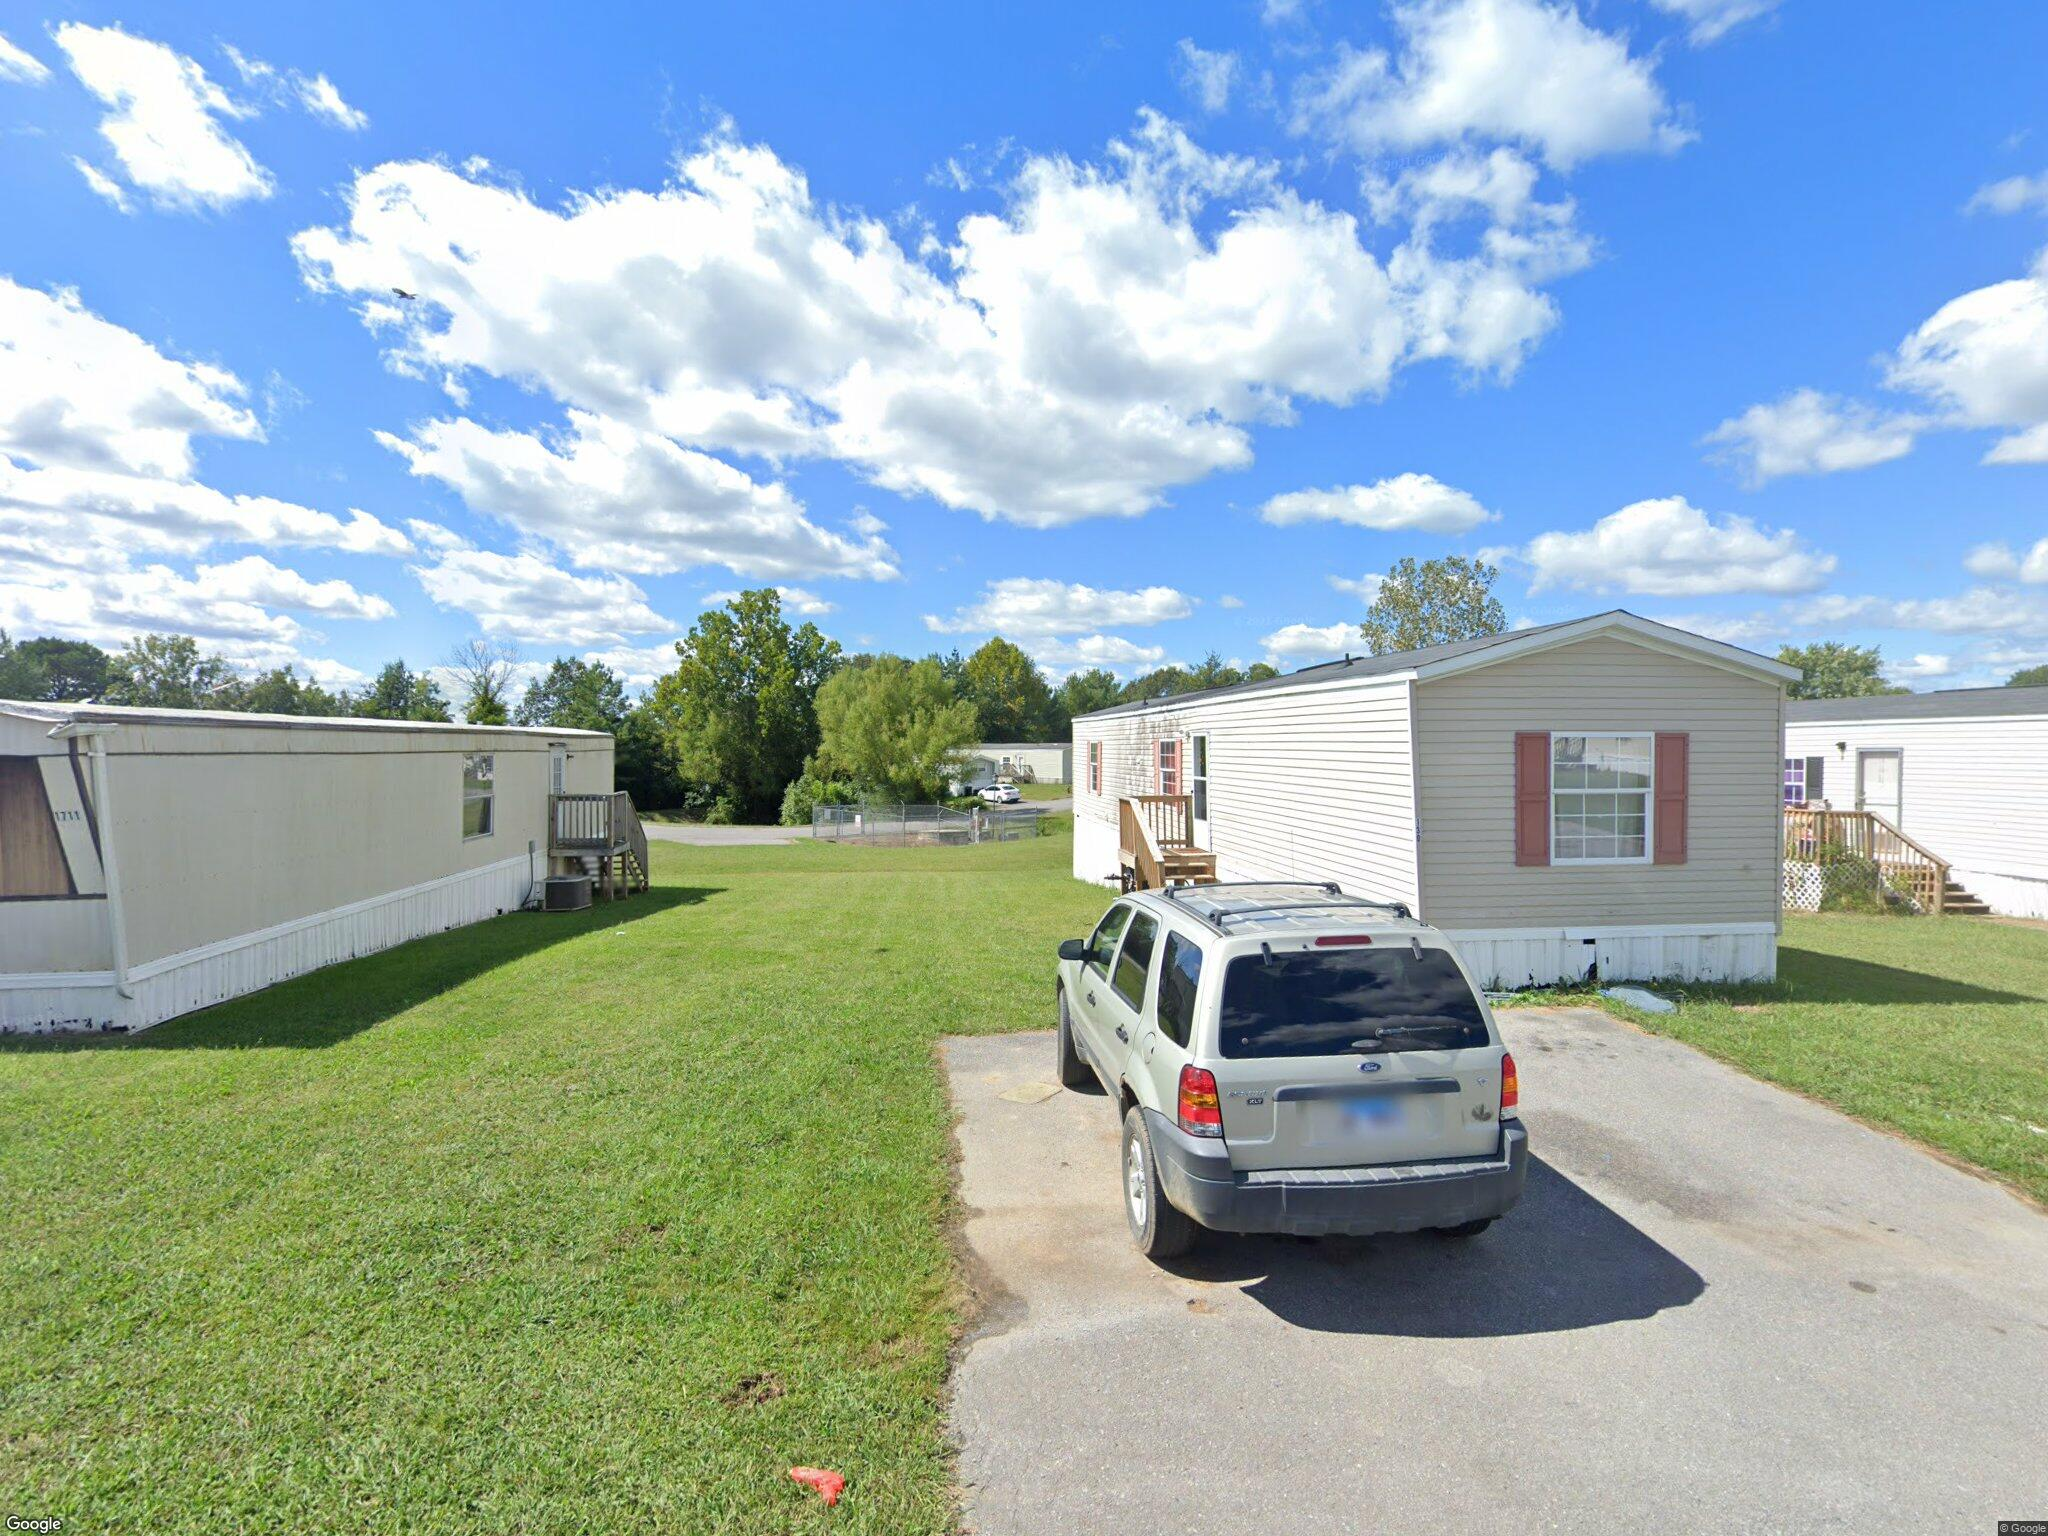 134 Moonlight Ct, Midway, TN 37809 For Rent | Trulia